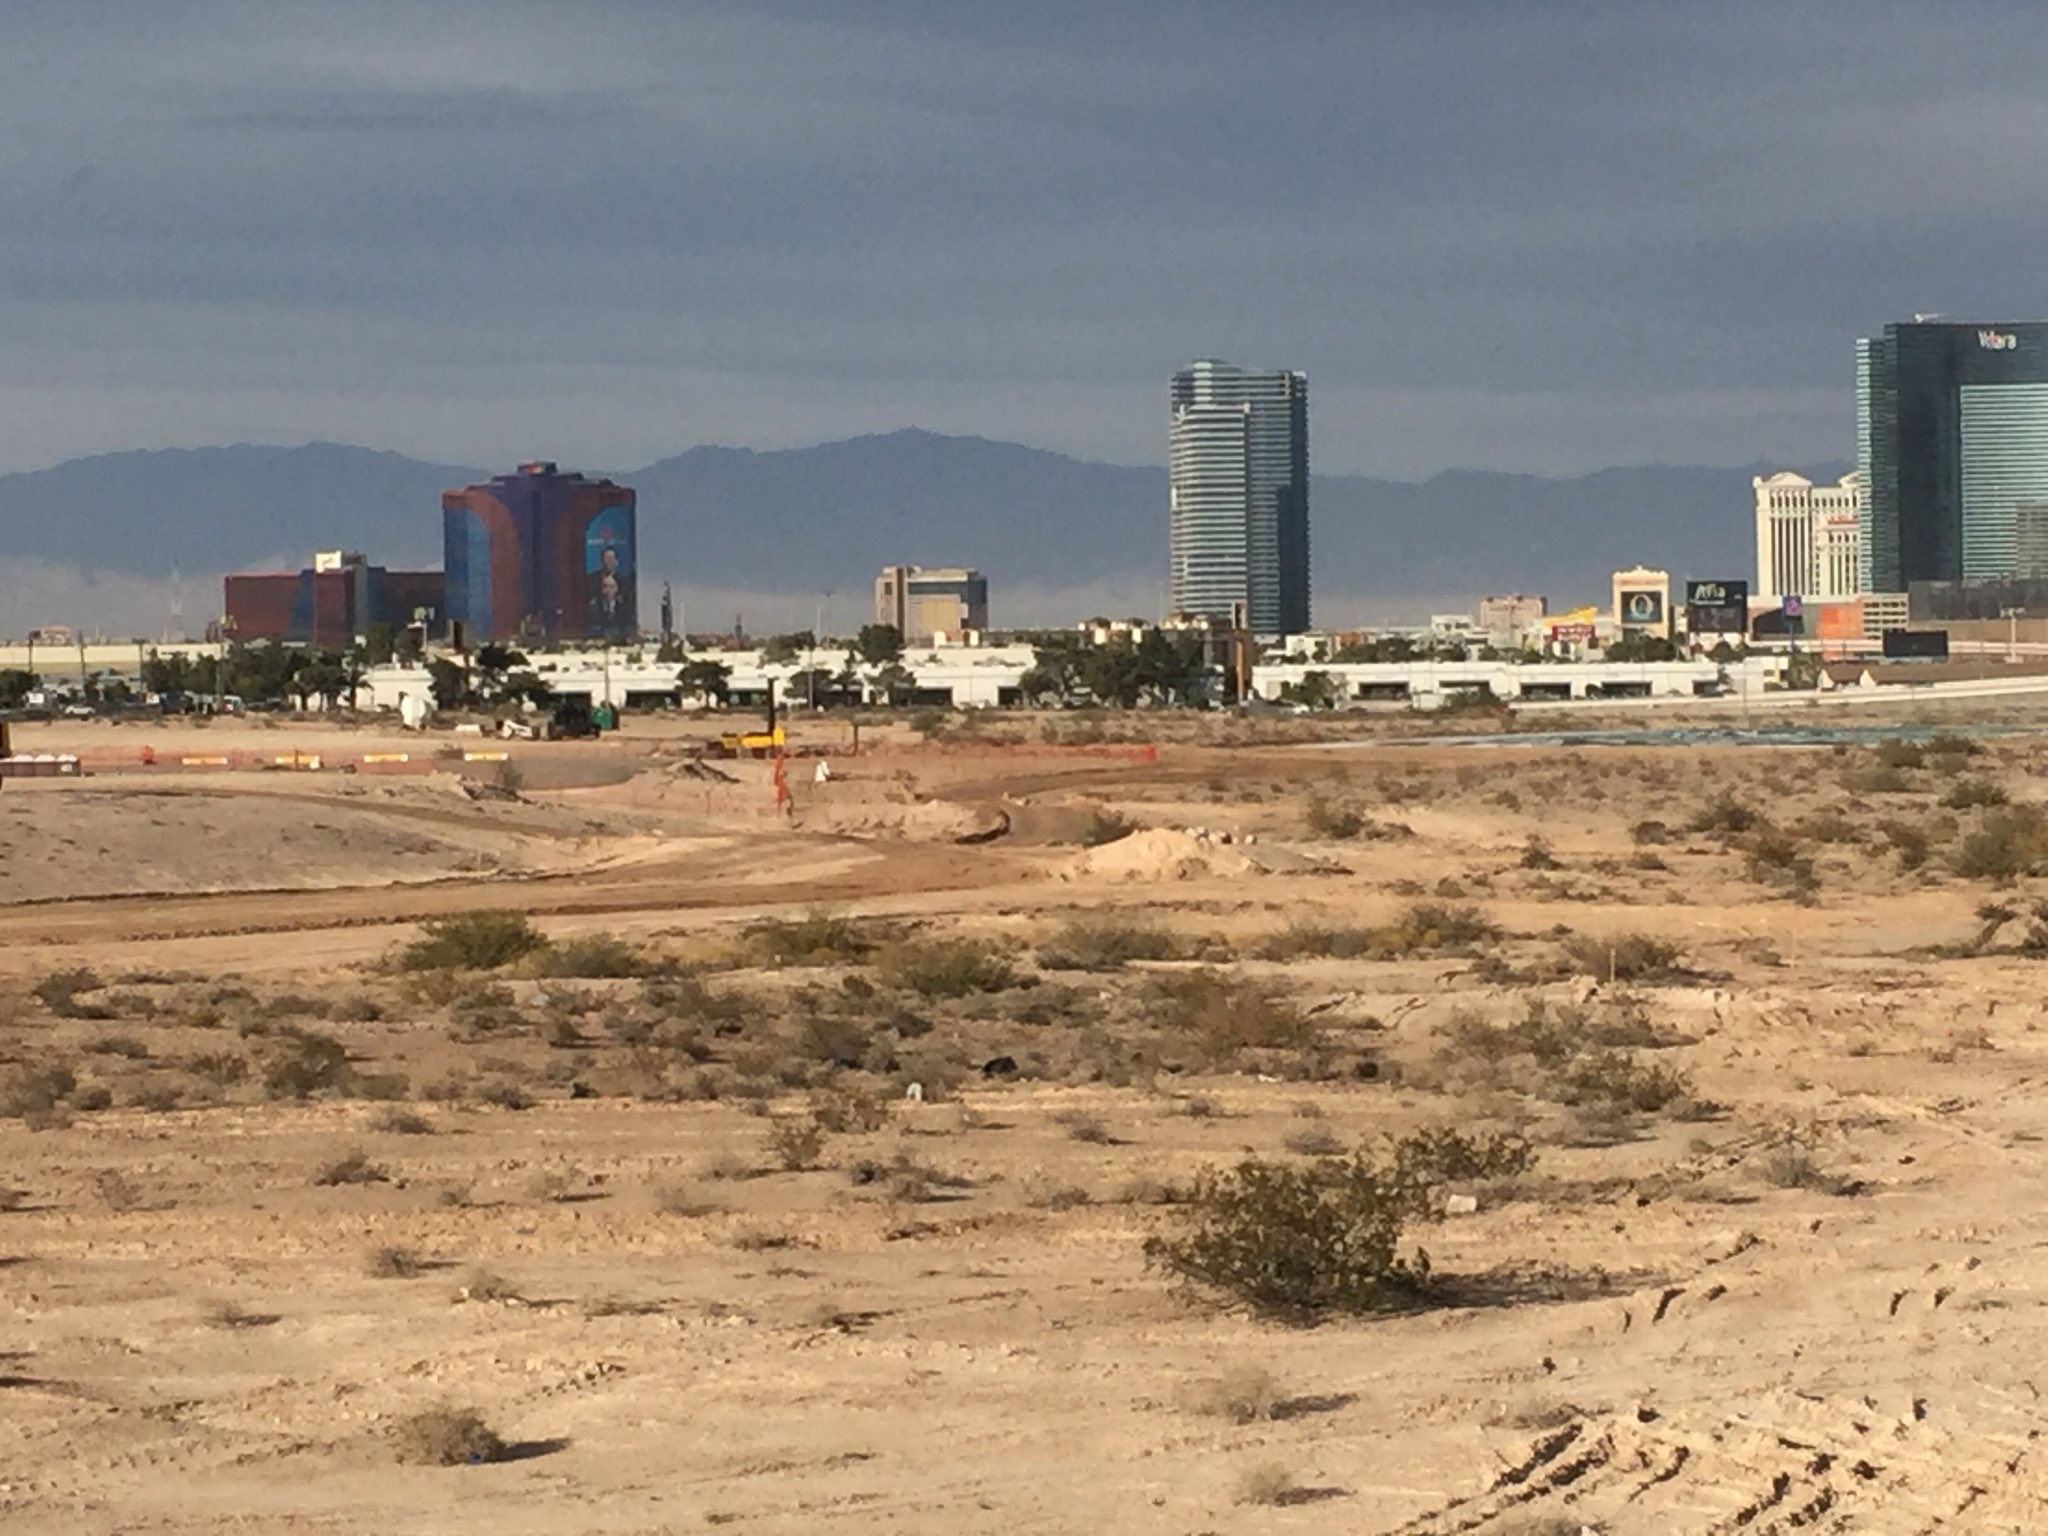 The groundbreaking tent is already gone. They're beginning to move dirt at the Raiders stadium site. (Jeff Gillan | KSNV)